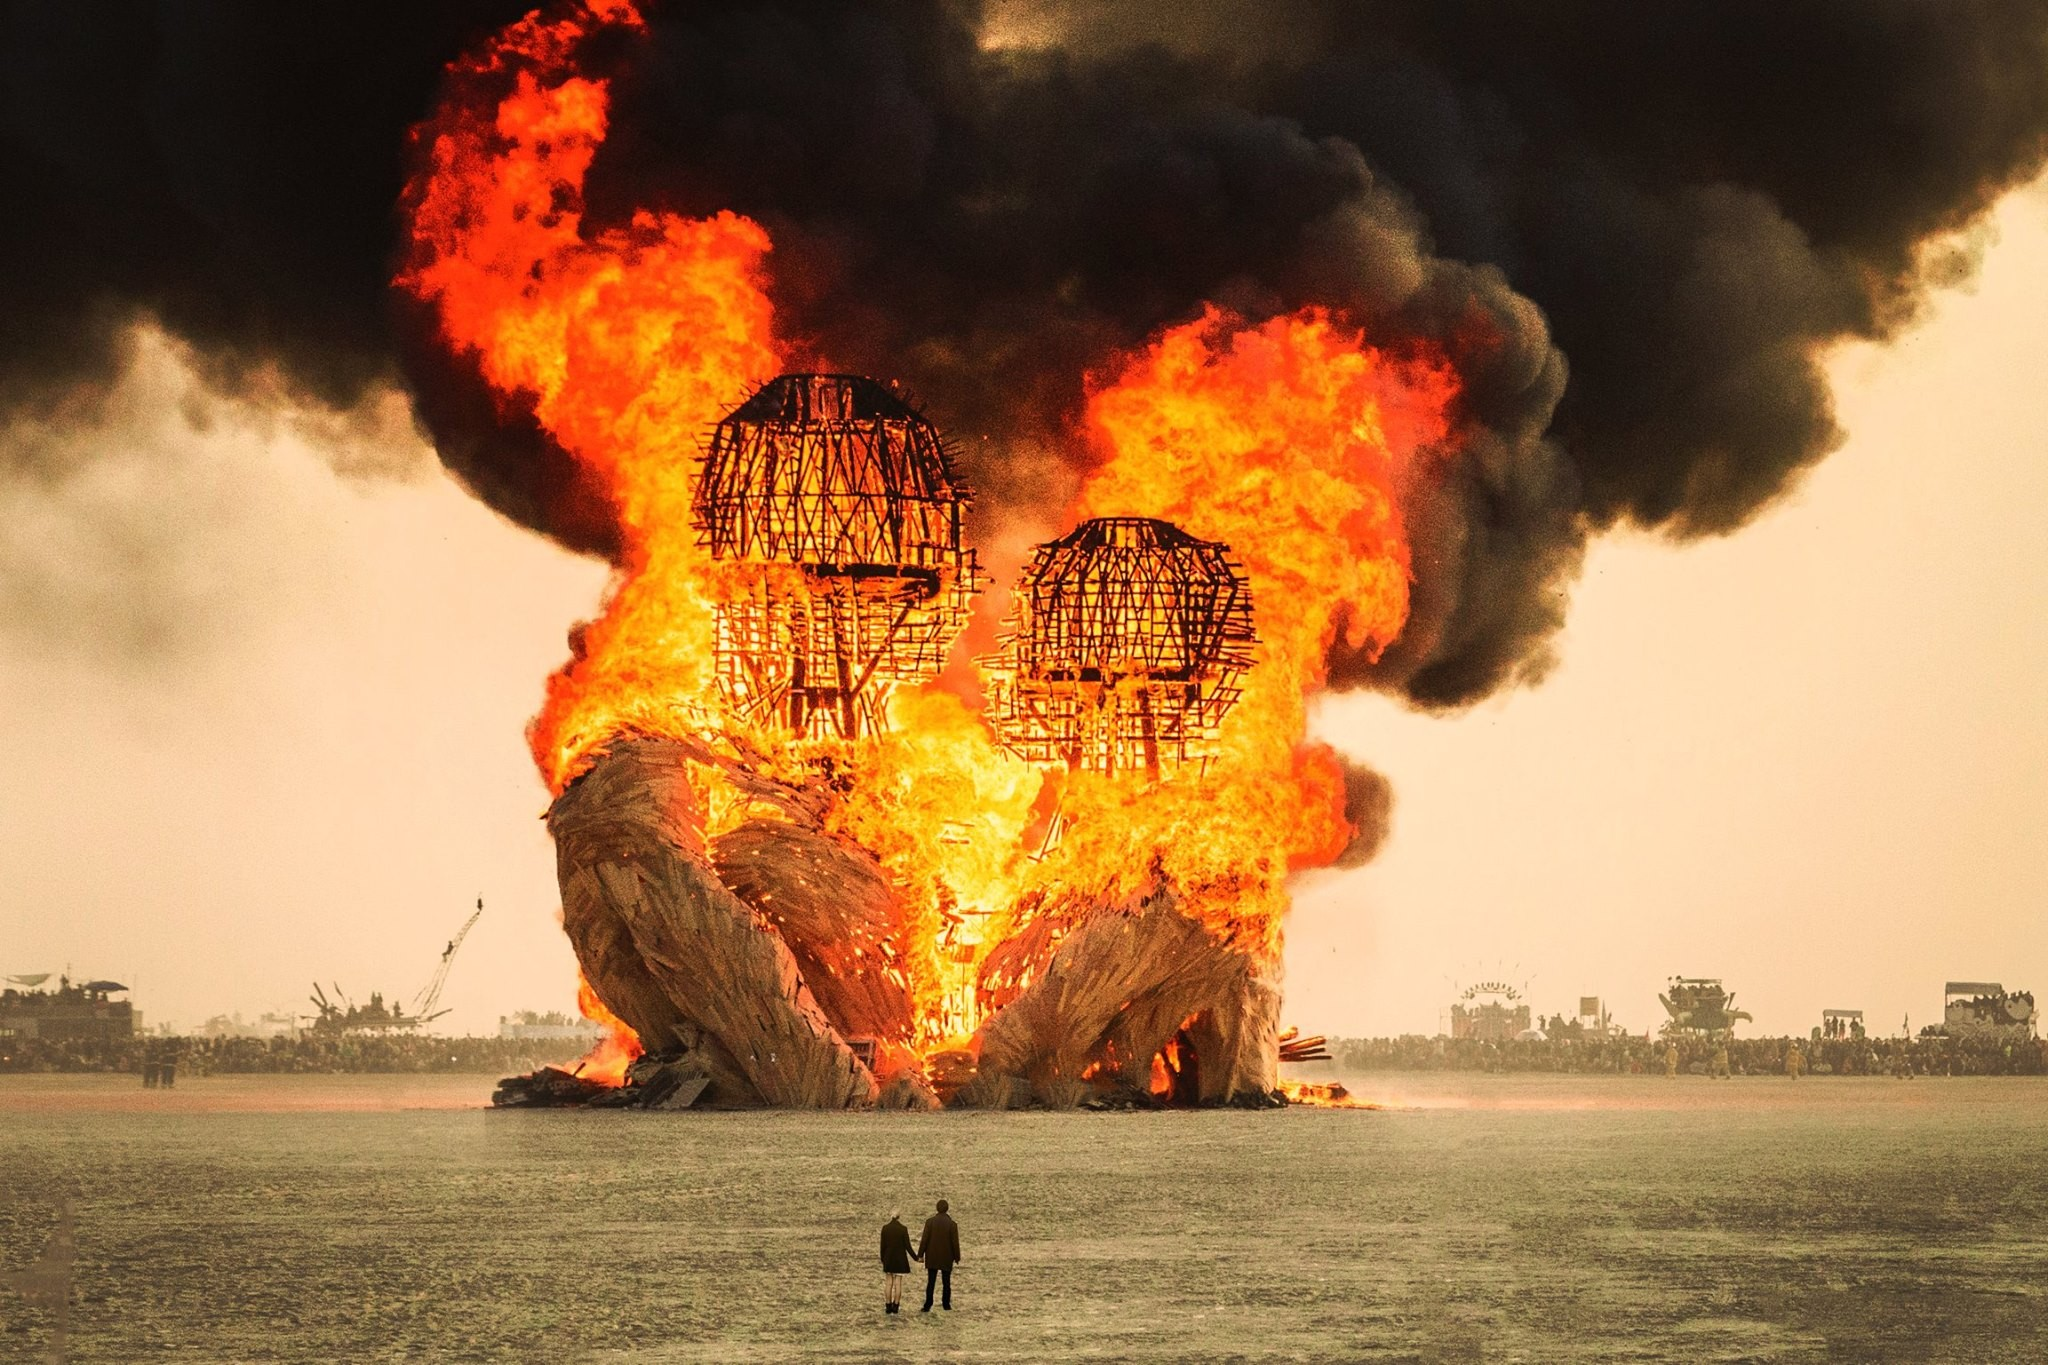 This $265,000 Burning Man sculpture burned to ashes – Public Delivery